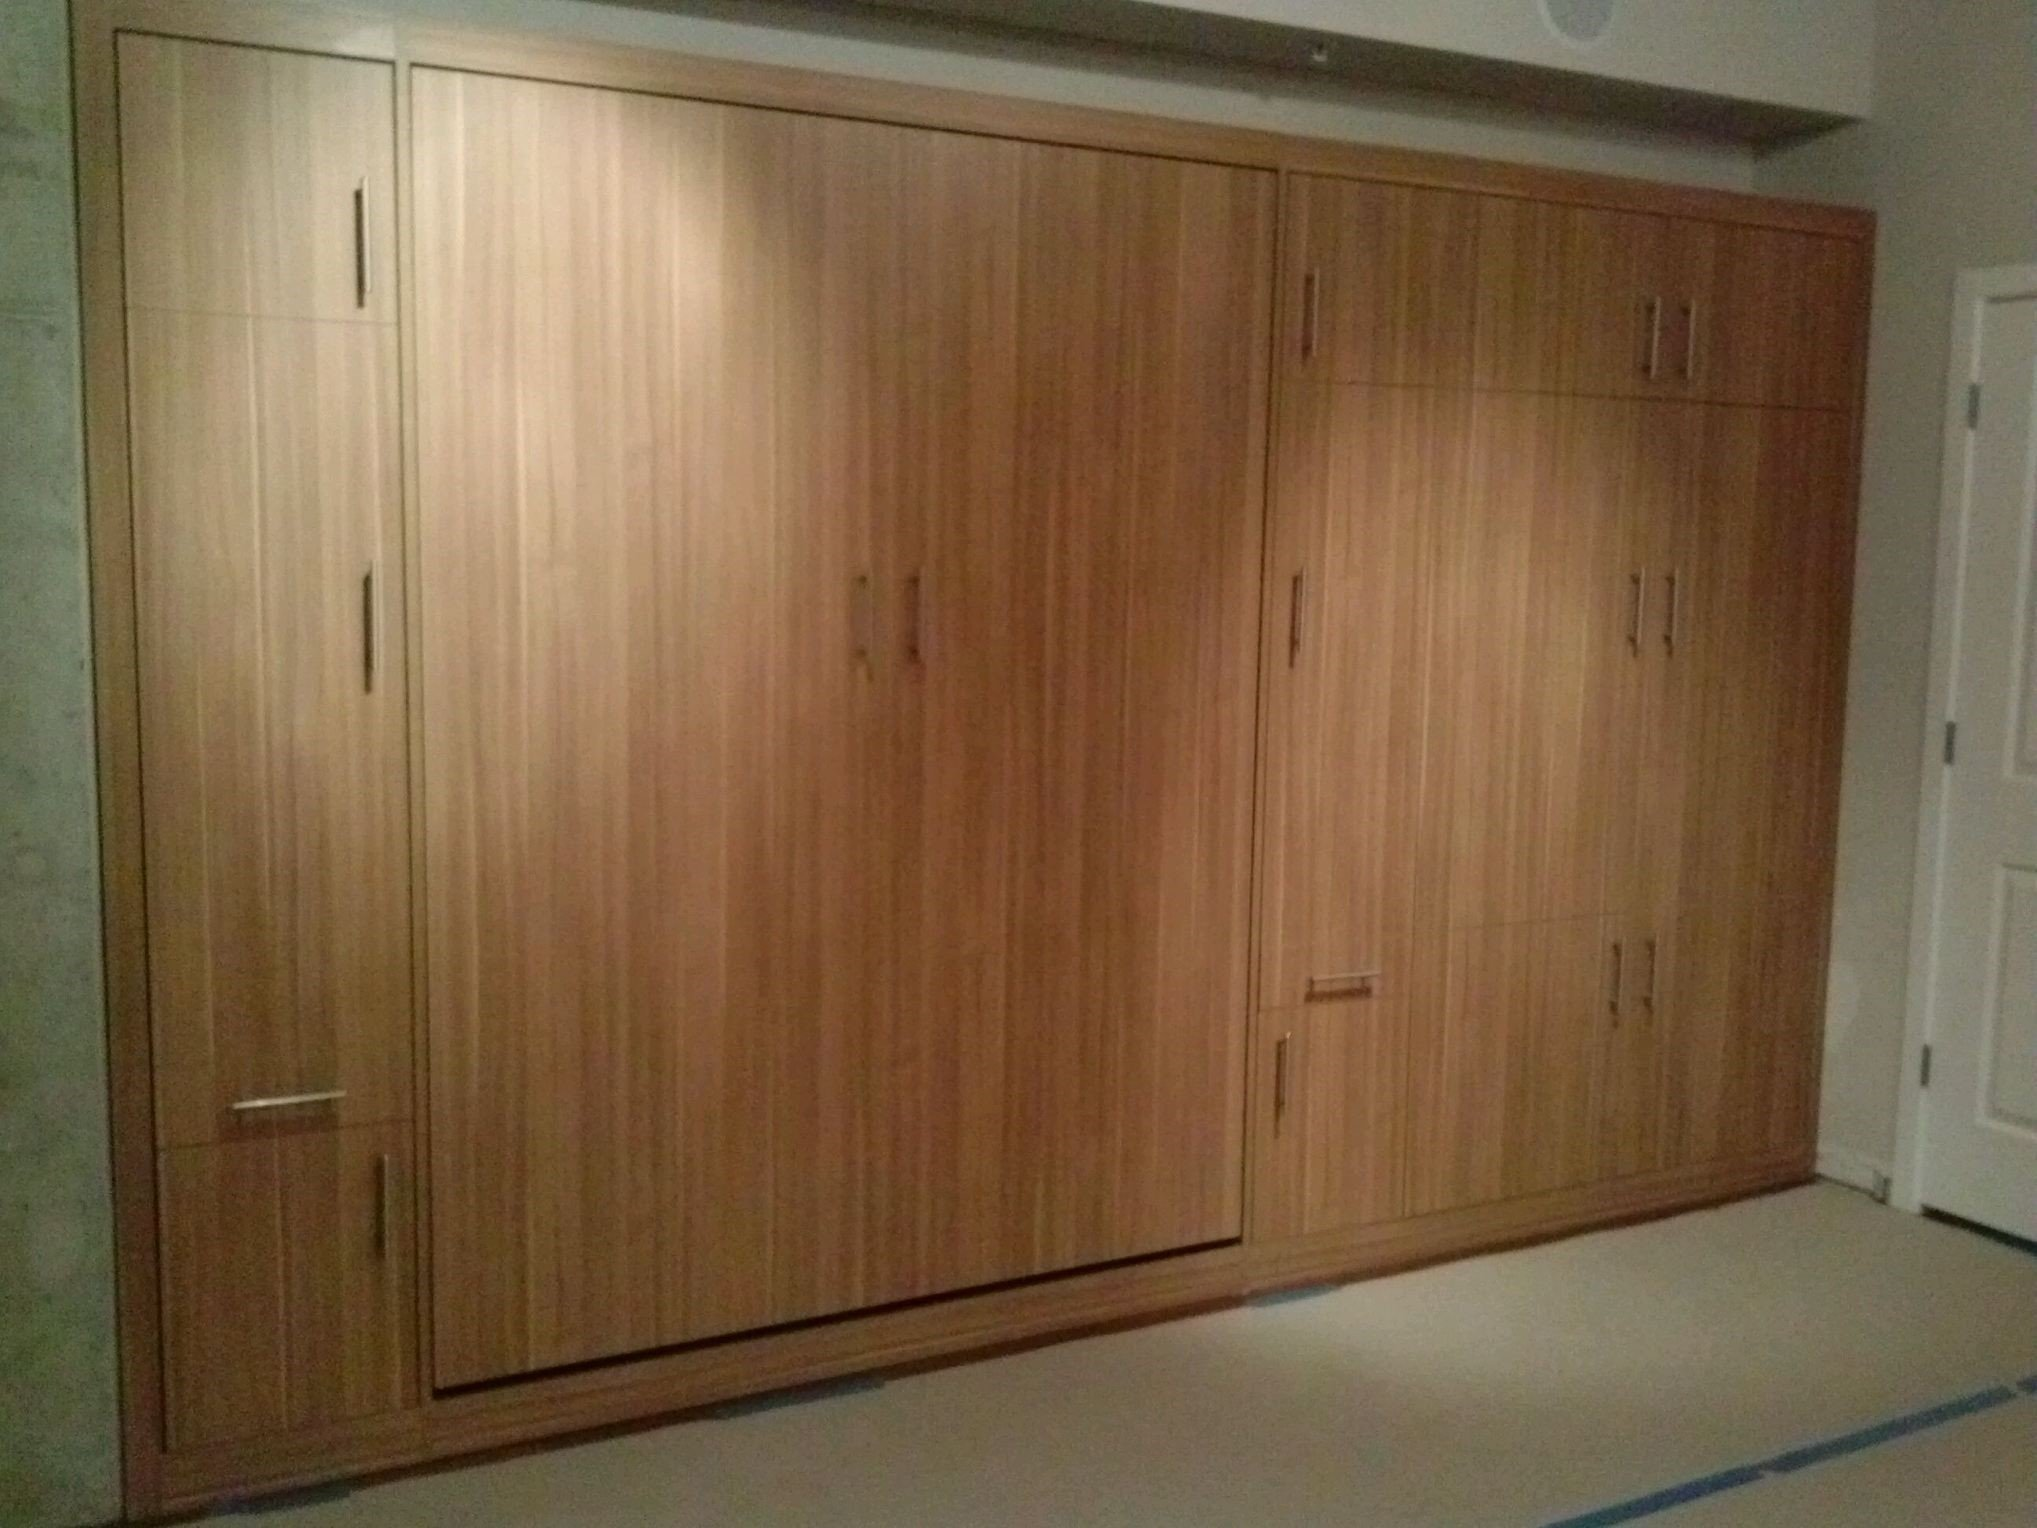 whole wall modern textured wall bed with deep side wardrobe closets